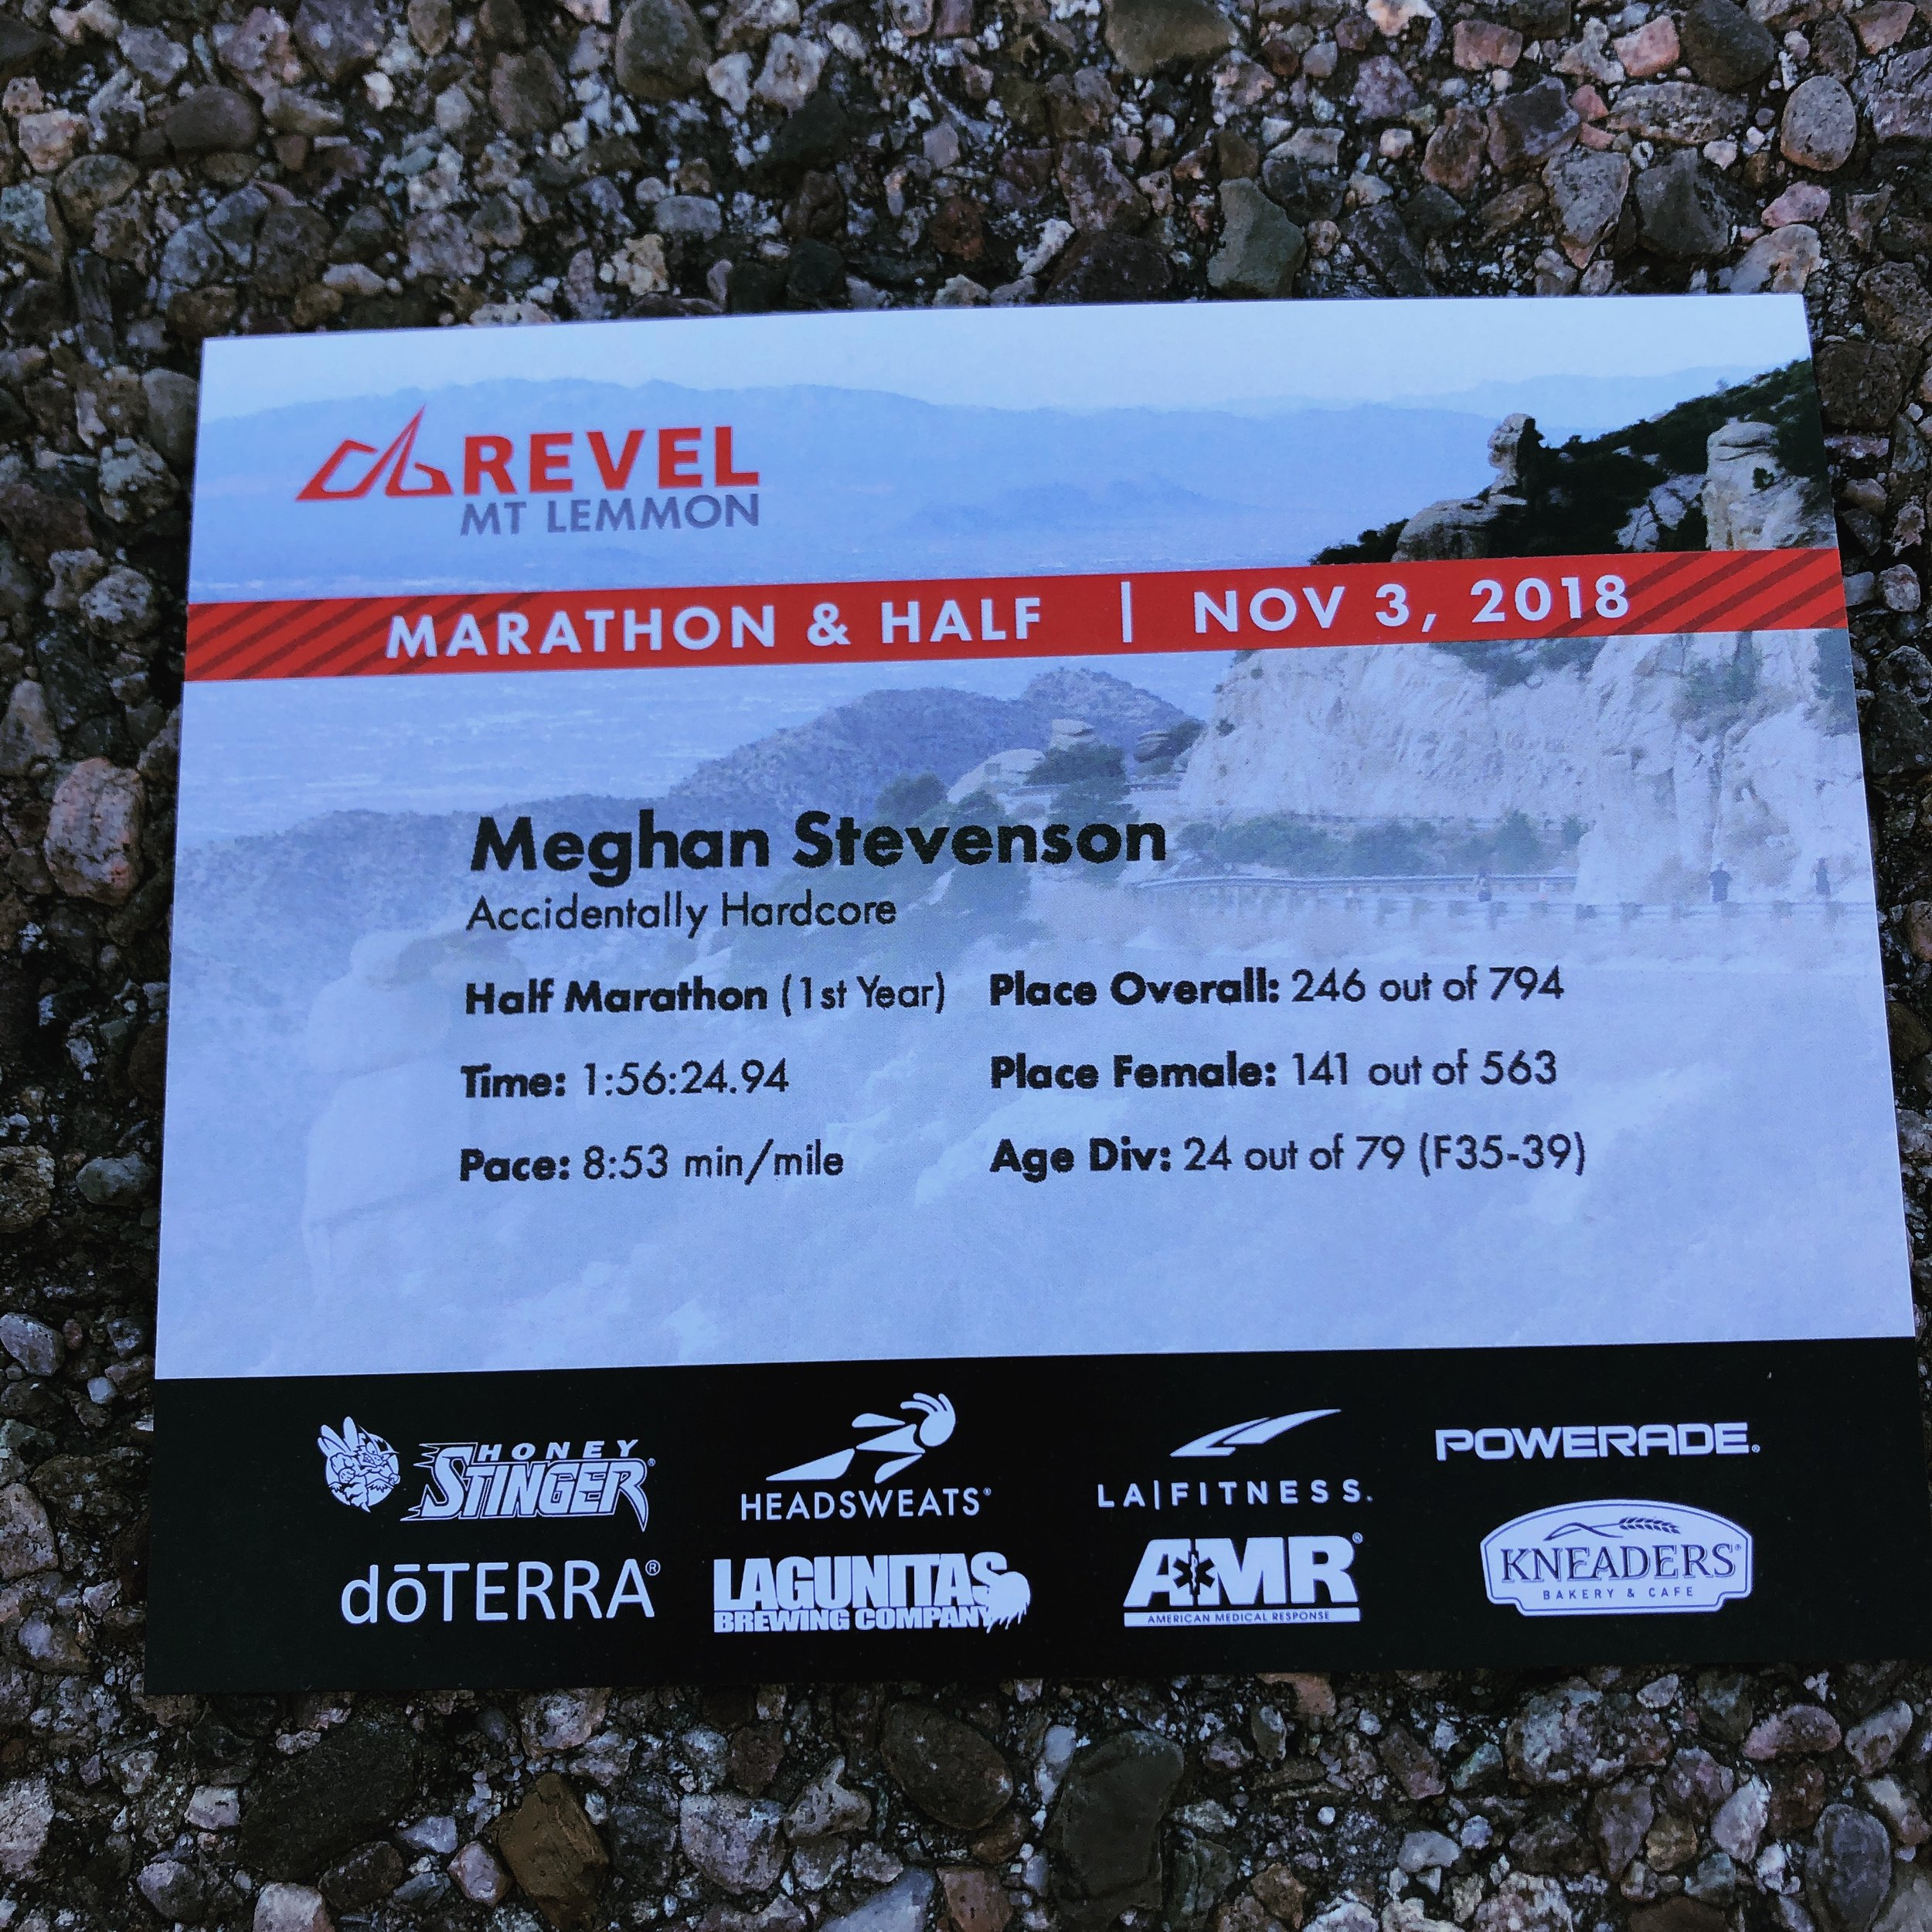 The awesome results card that Revel prints at the finish line.